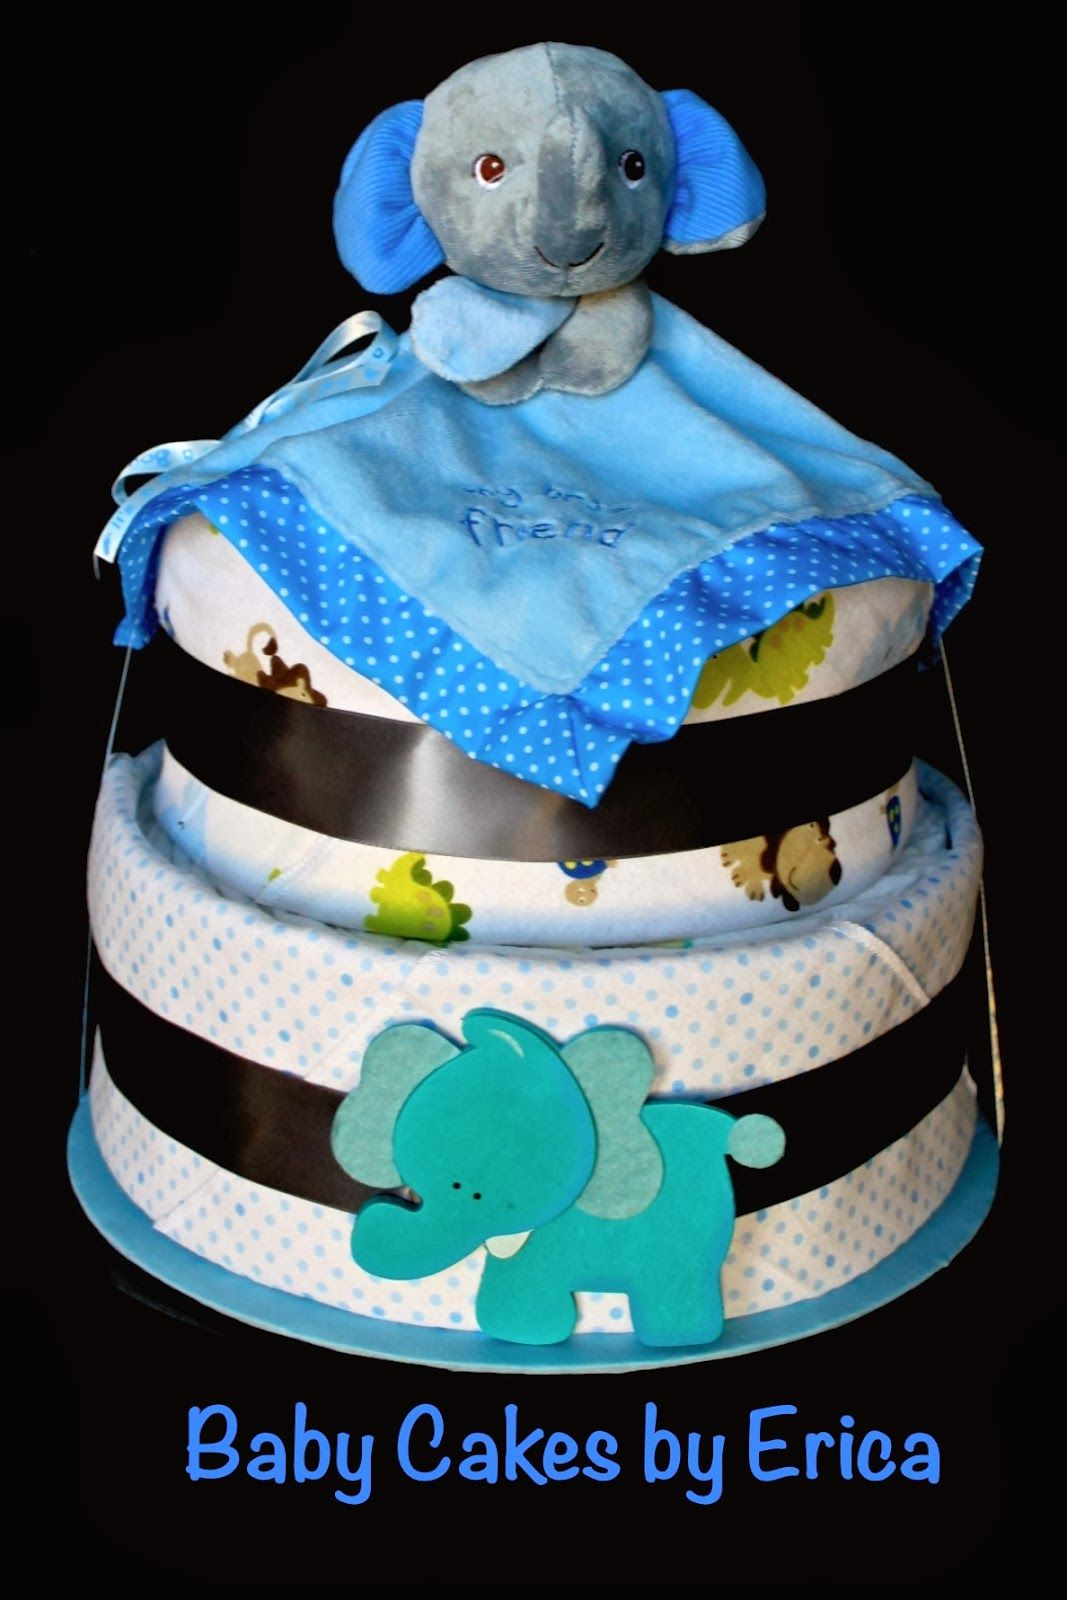 Baby cakes by erica with images baby cake elephant